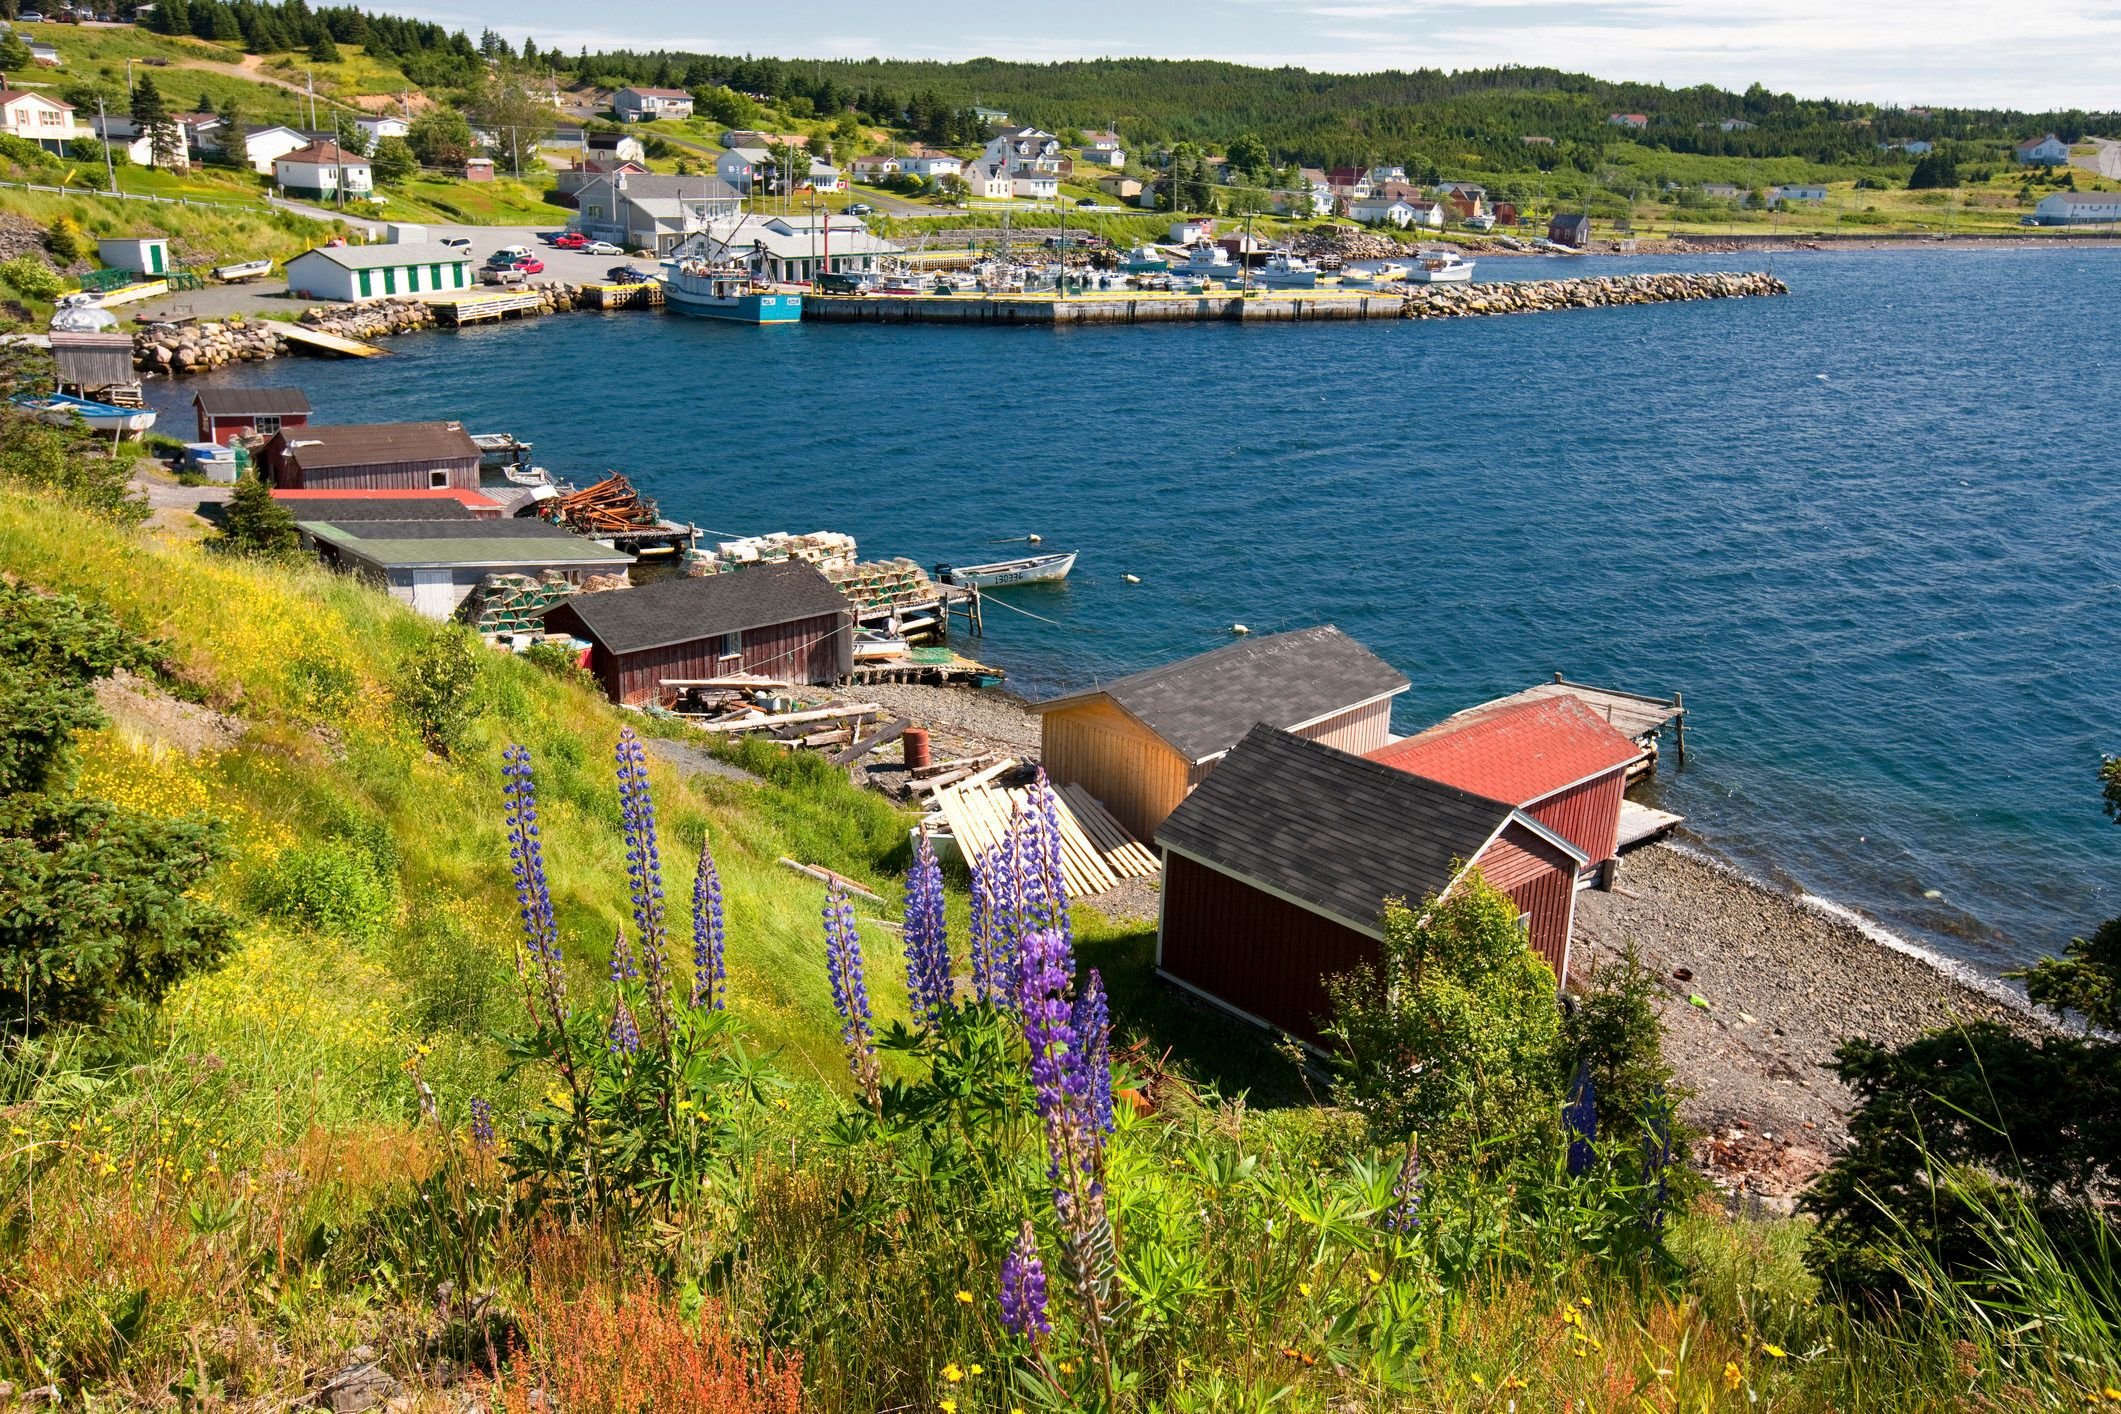 Lupines (Lupinus perennis) and fishing sheds in Dildo Harbour, Newfoundland and Labrador, Canada.